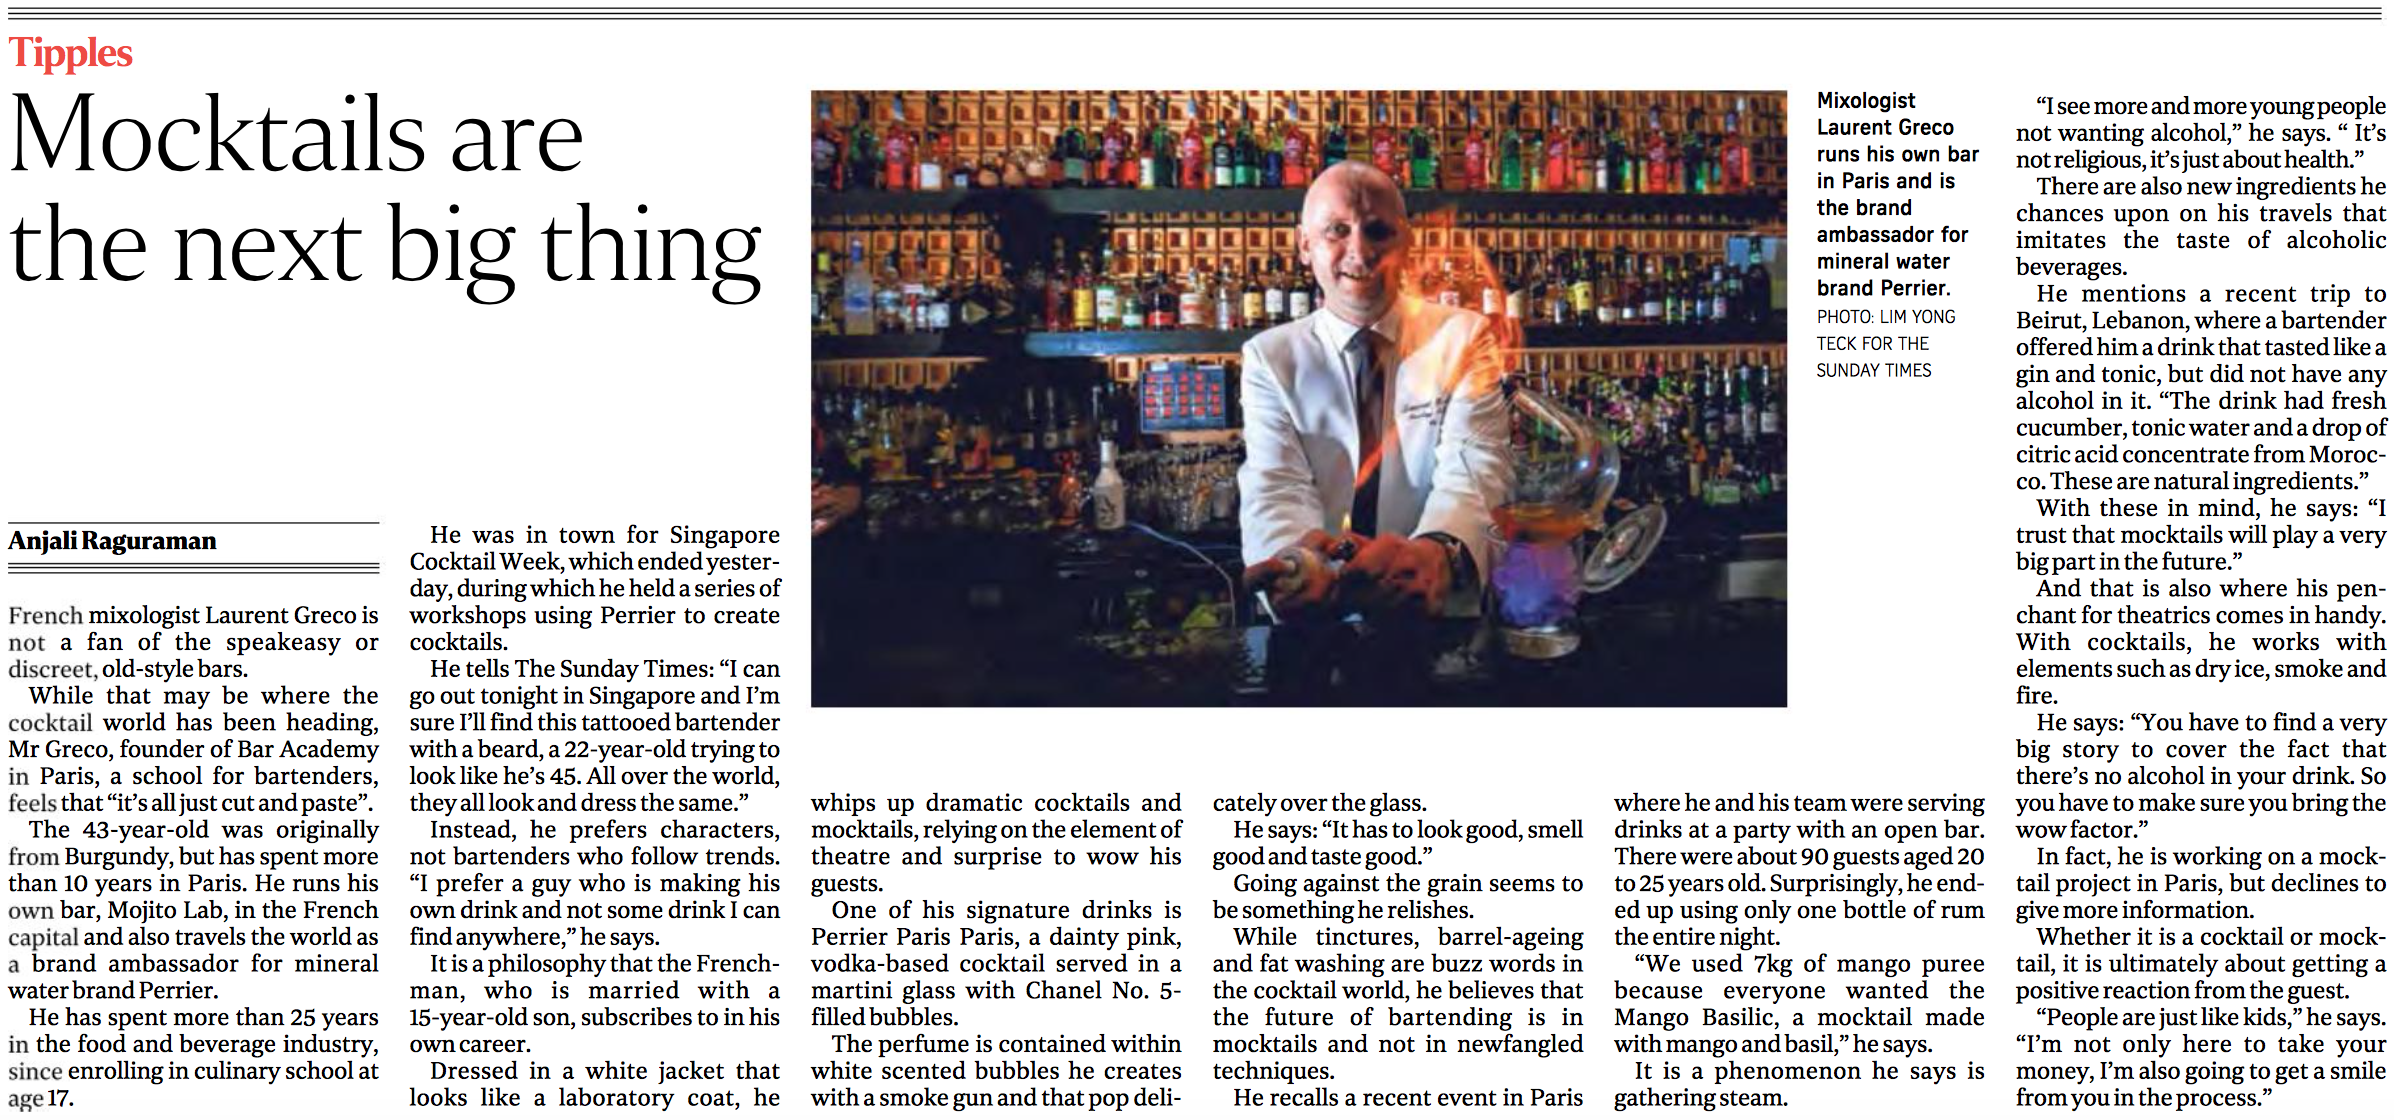 Laurent Greco feature for The Straits Times (www.straitstimes.com)